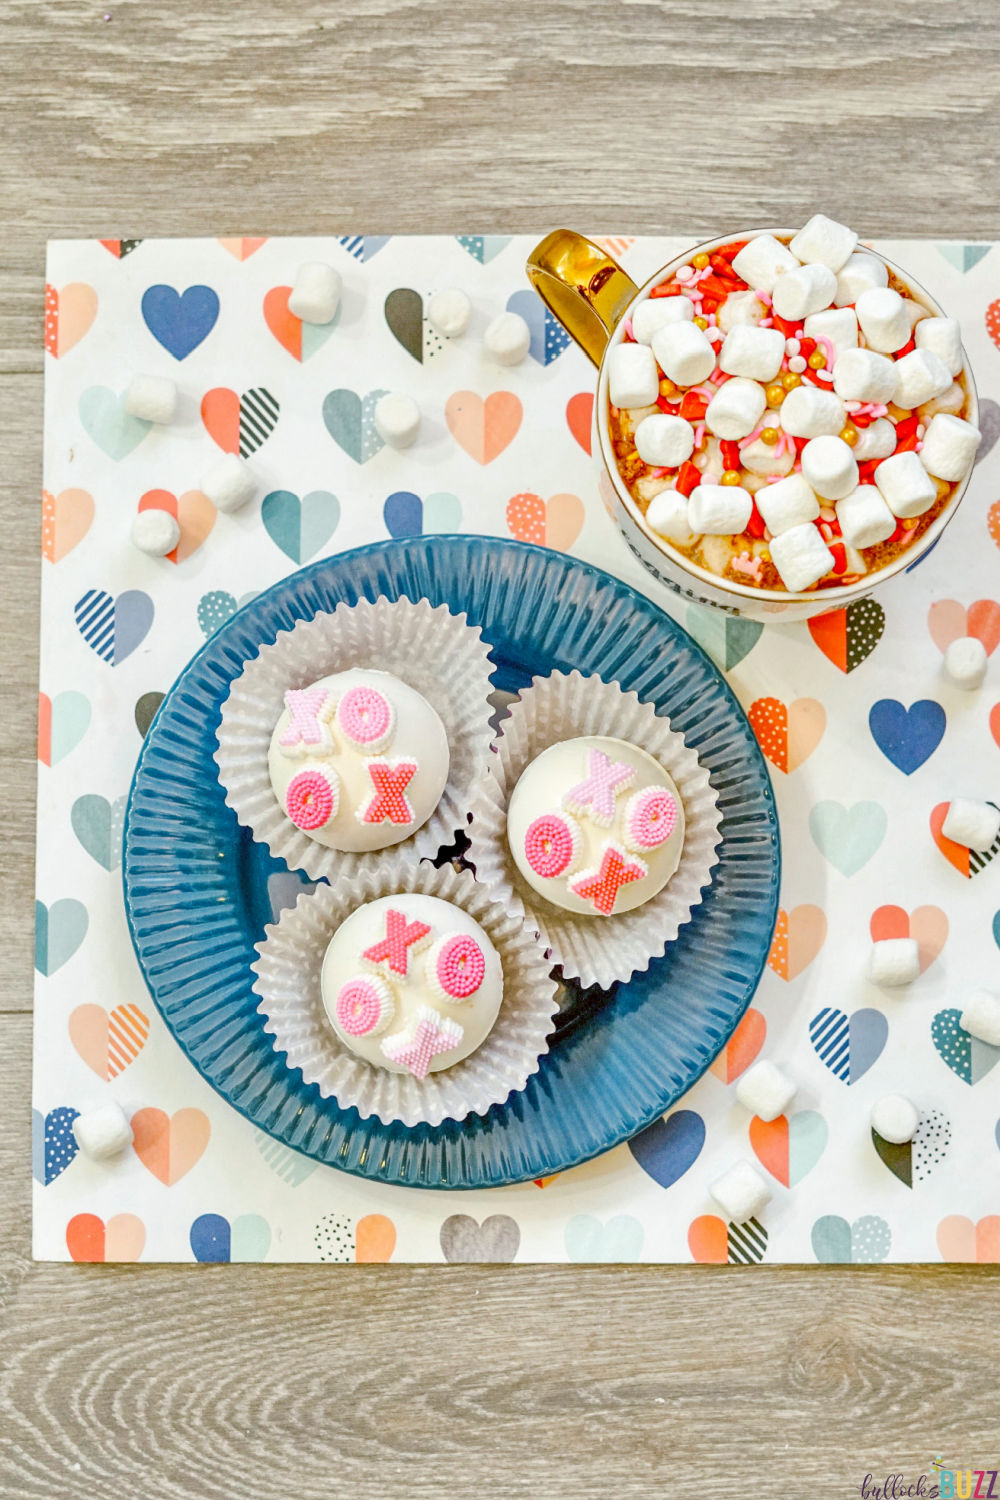 Valentine's Day just wouldn't be Valentine's Day without chocolate. And these delicious XOXO Valentine's hot cocoa bombs are the perfect chocolatey and sweet surprise to give to your special someone!